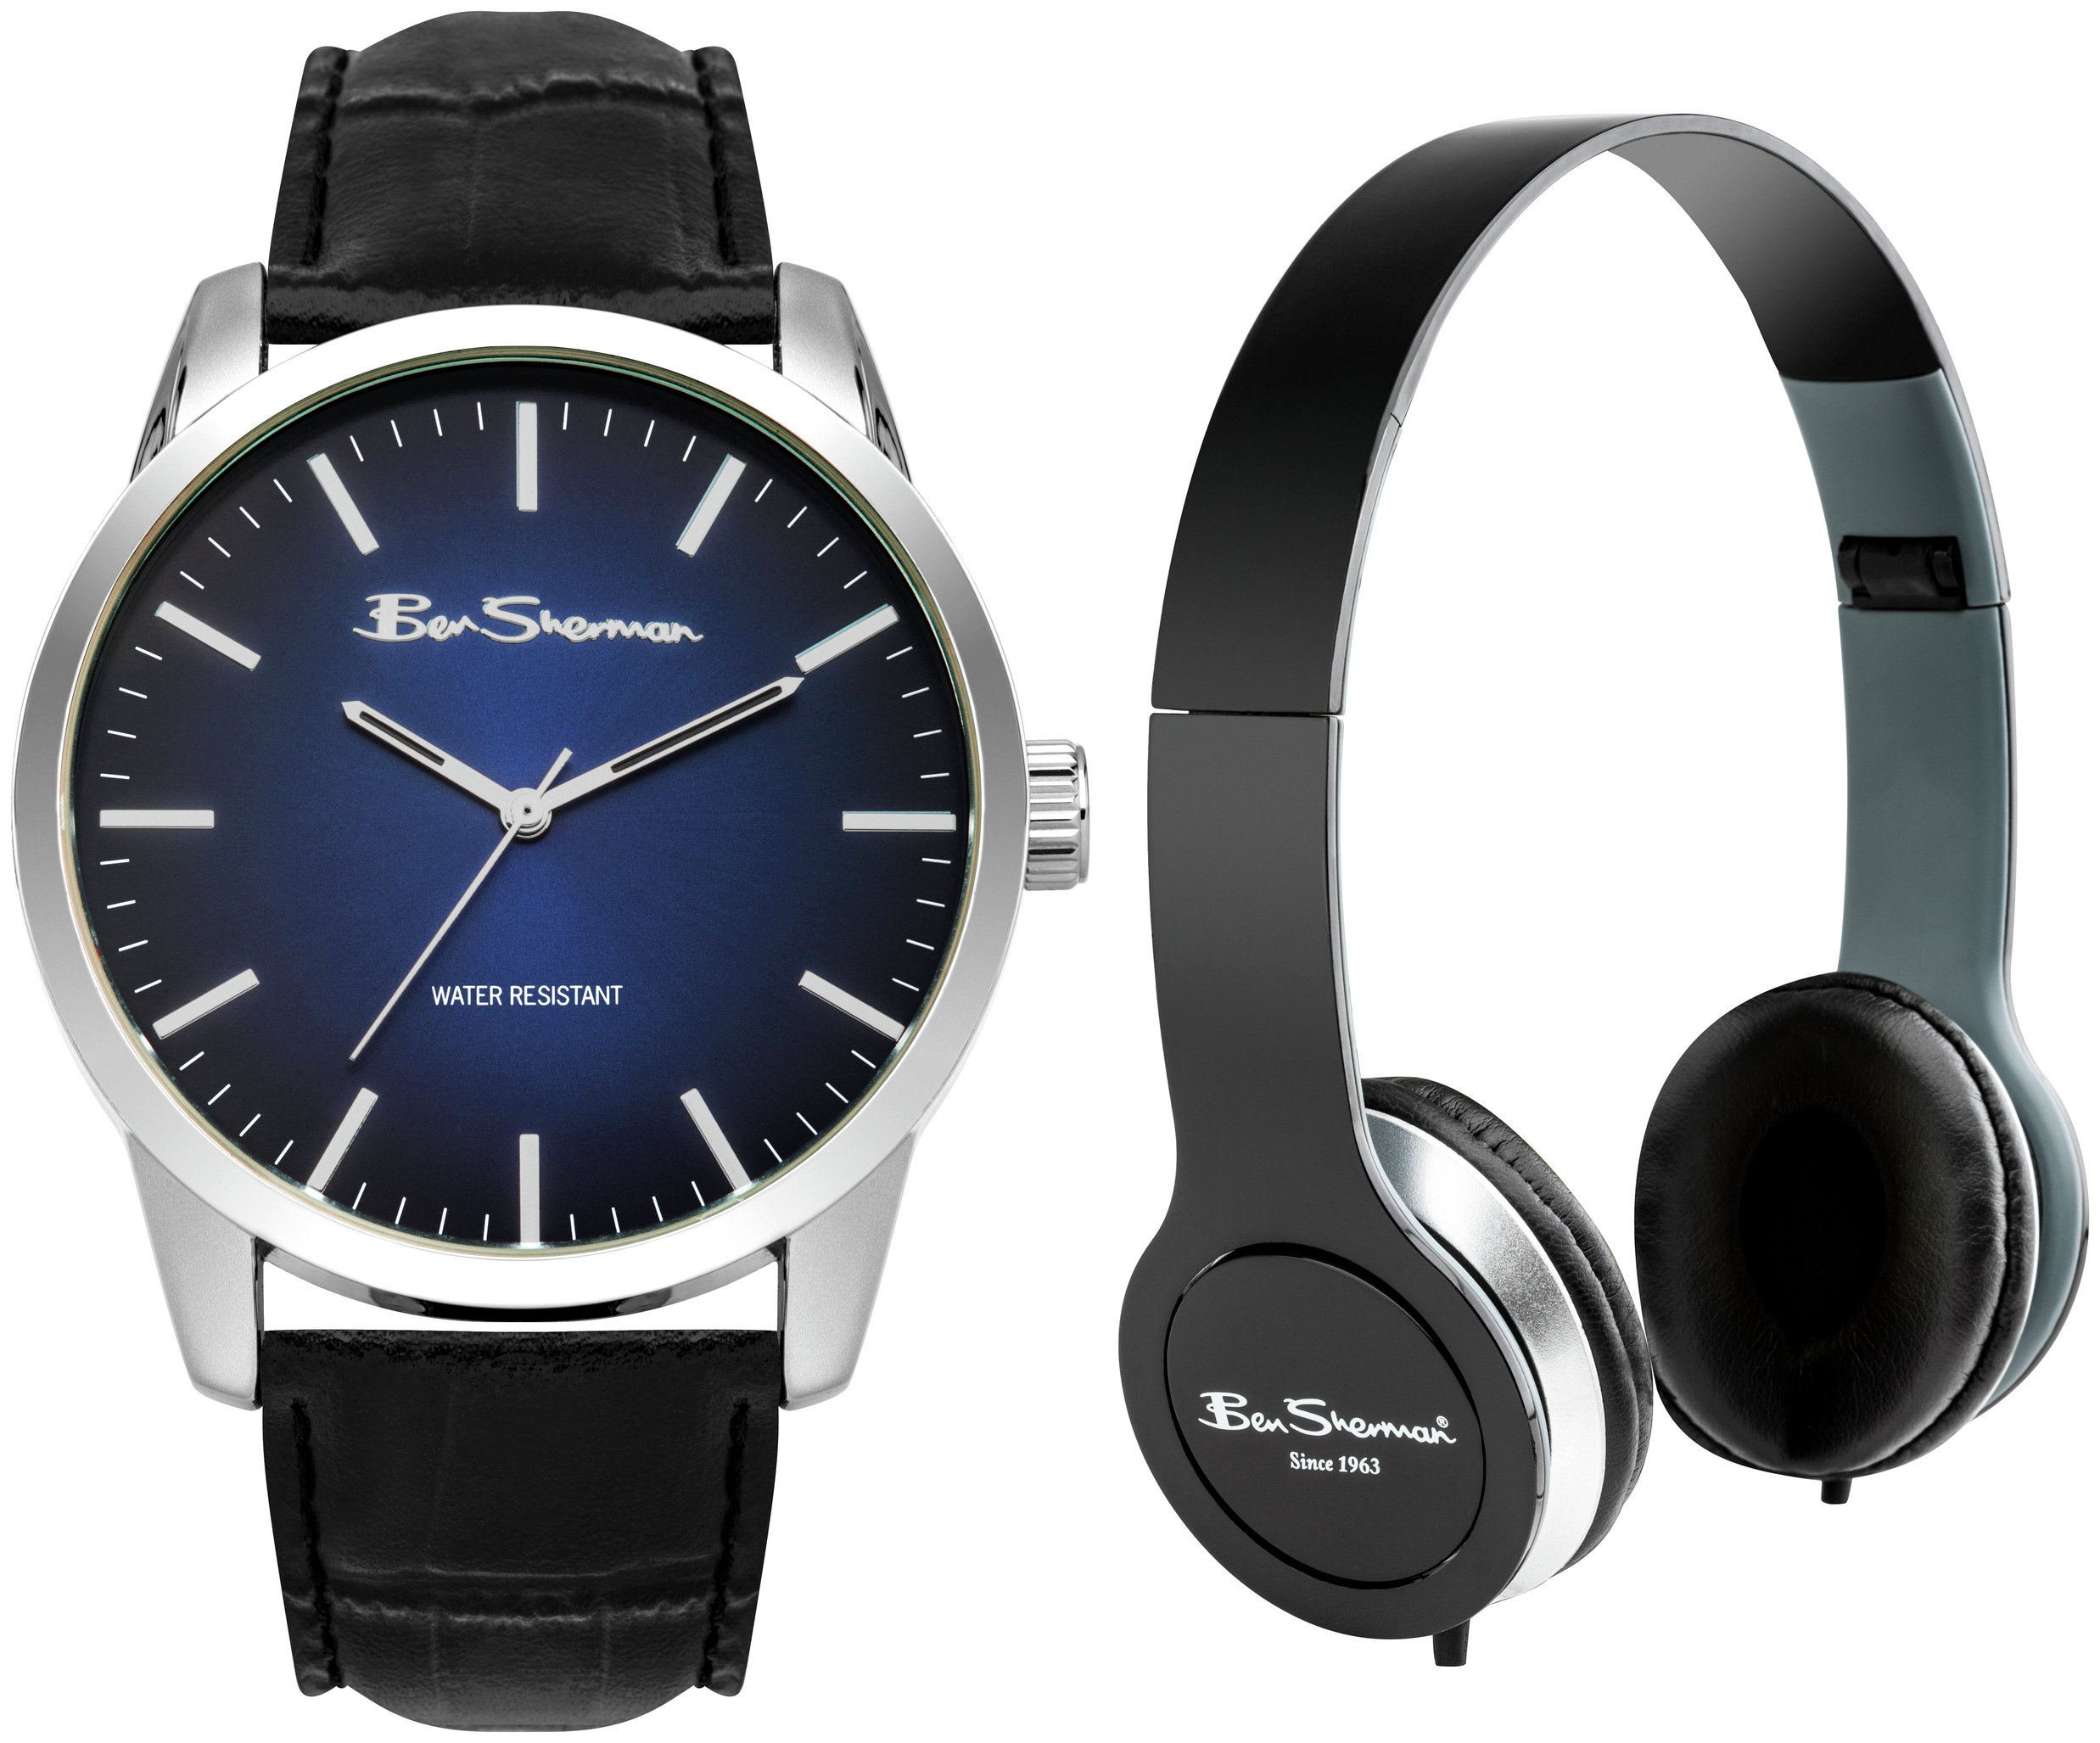 Image of Ben Sherman Watch and Headphone Set